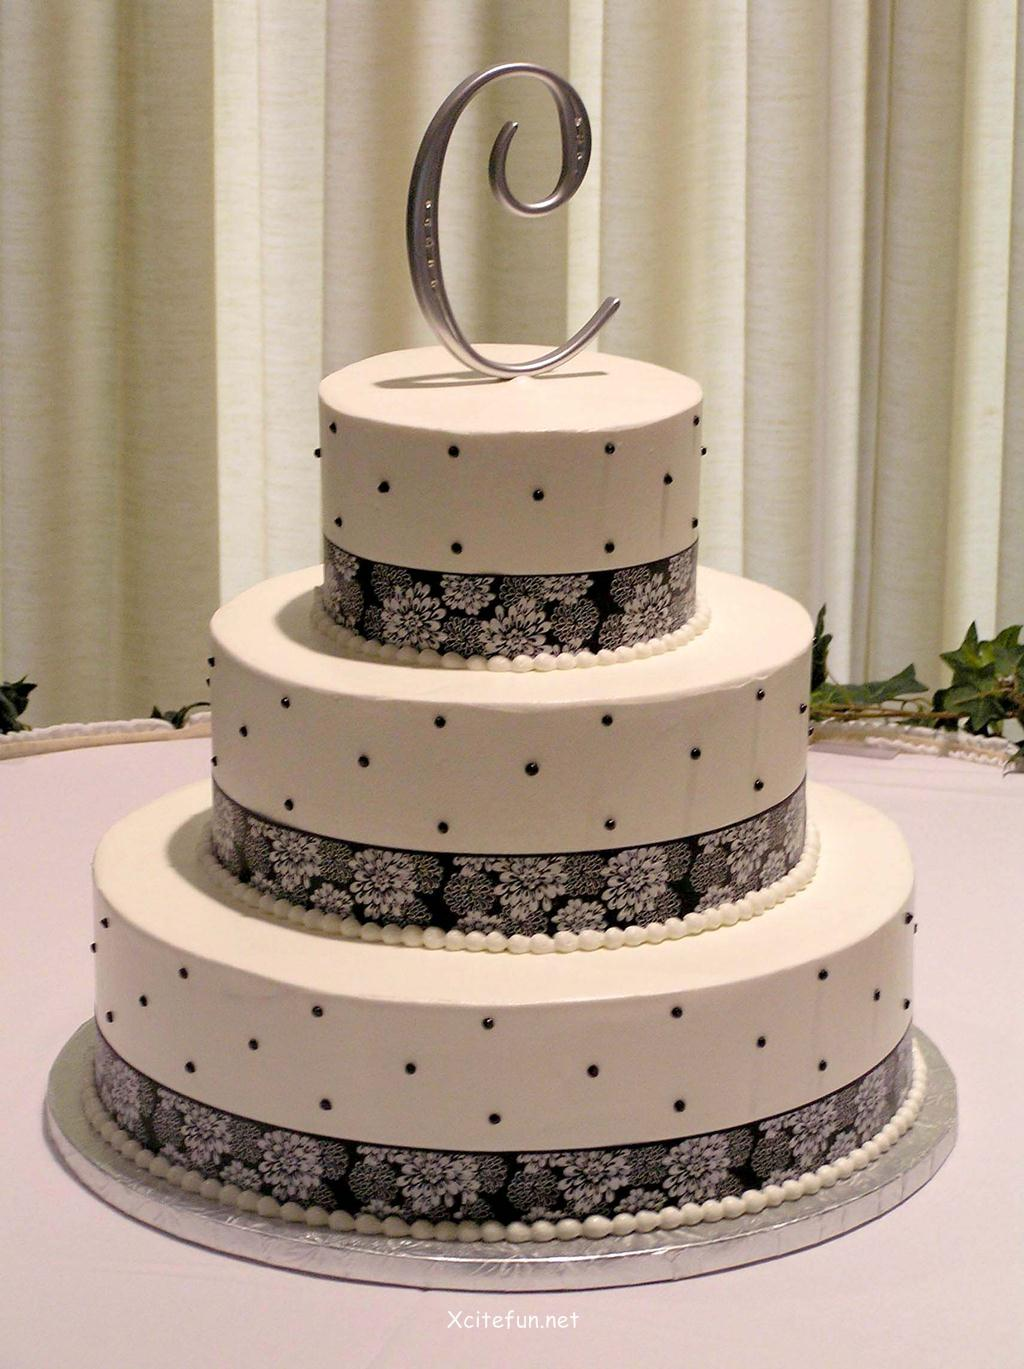 ideas wedding cakes design wedding cakes decorating ideas xcitefun net 16302